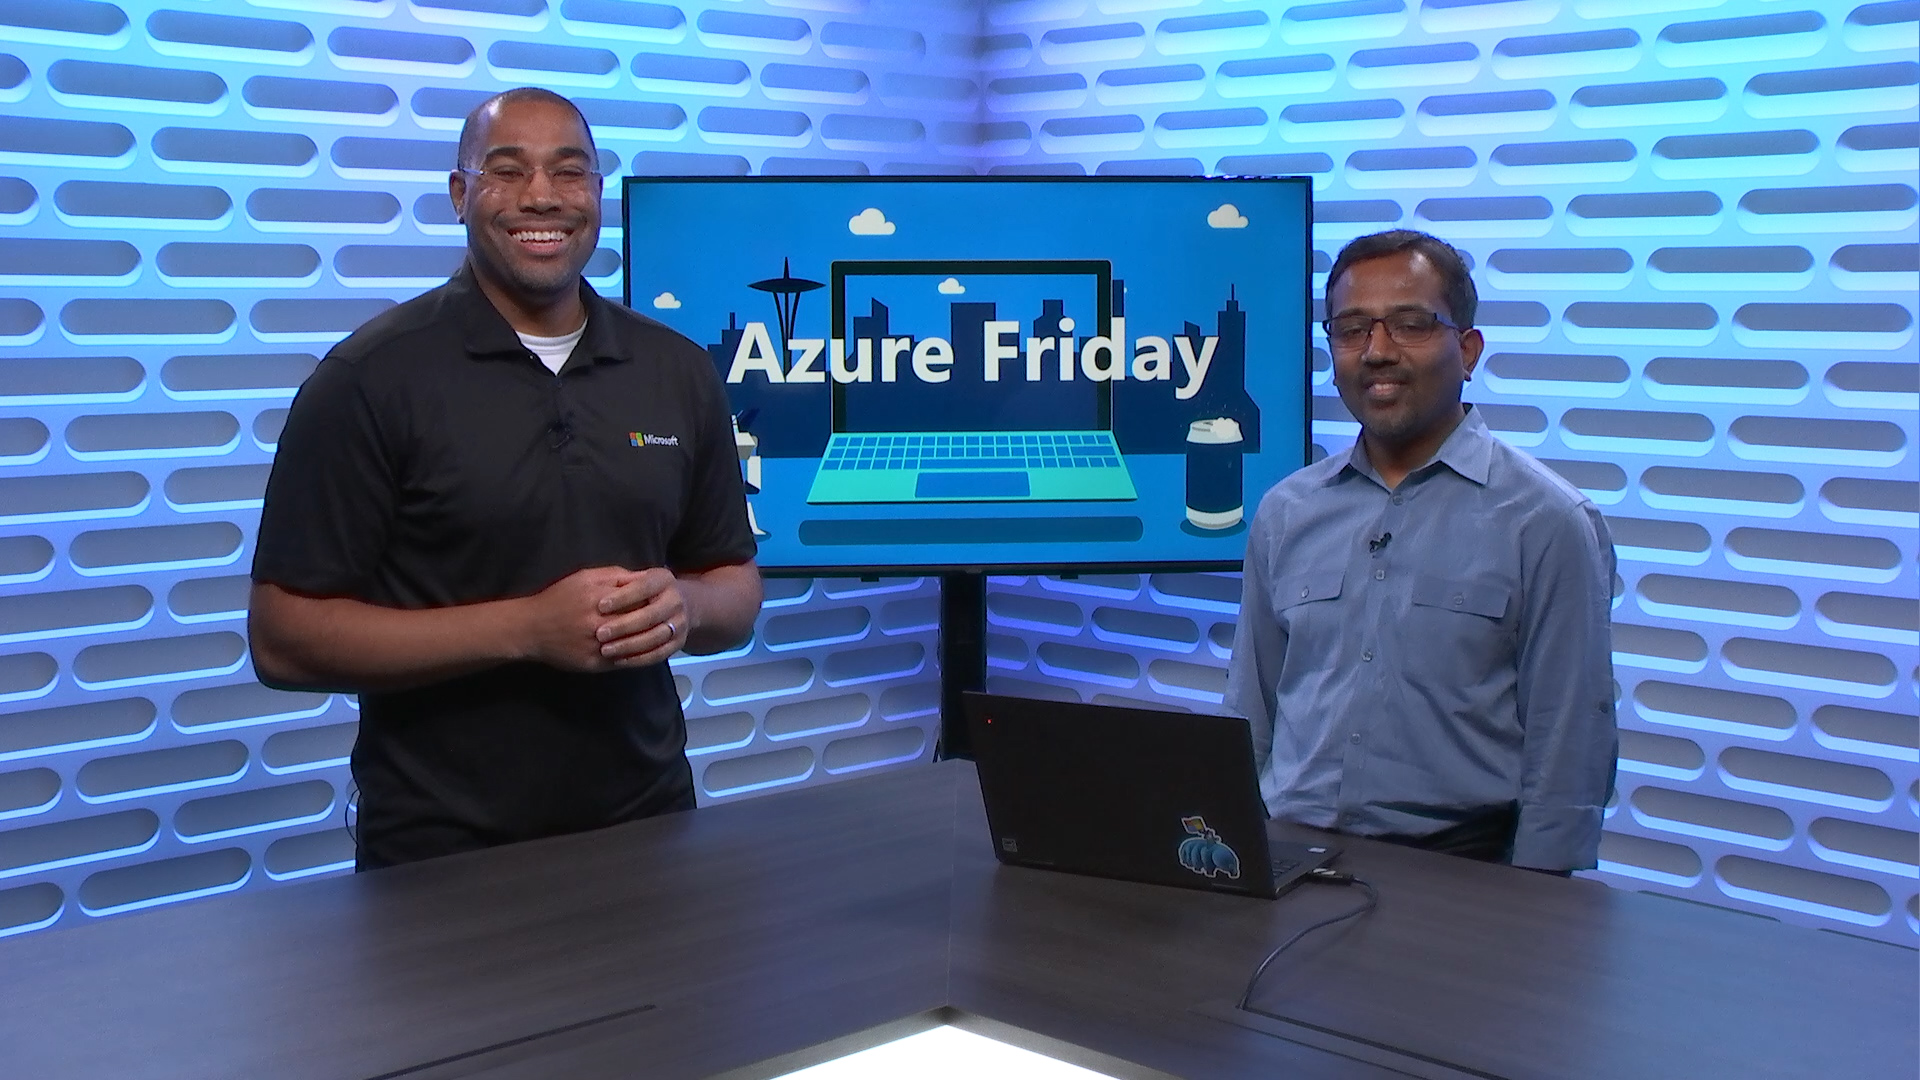 How to connect and deliver services privately on Azure with Azure Private Link